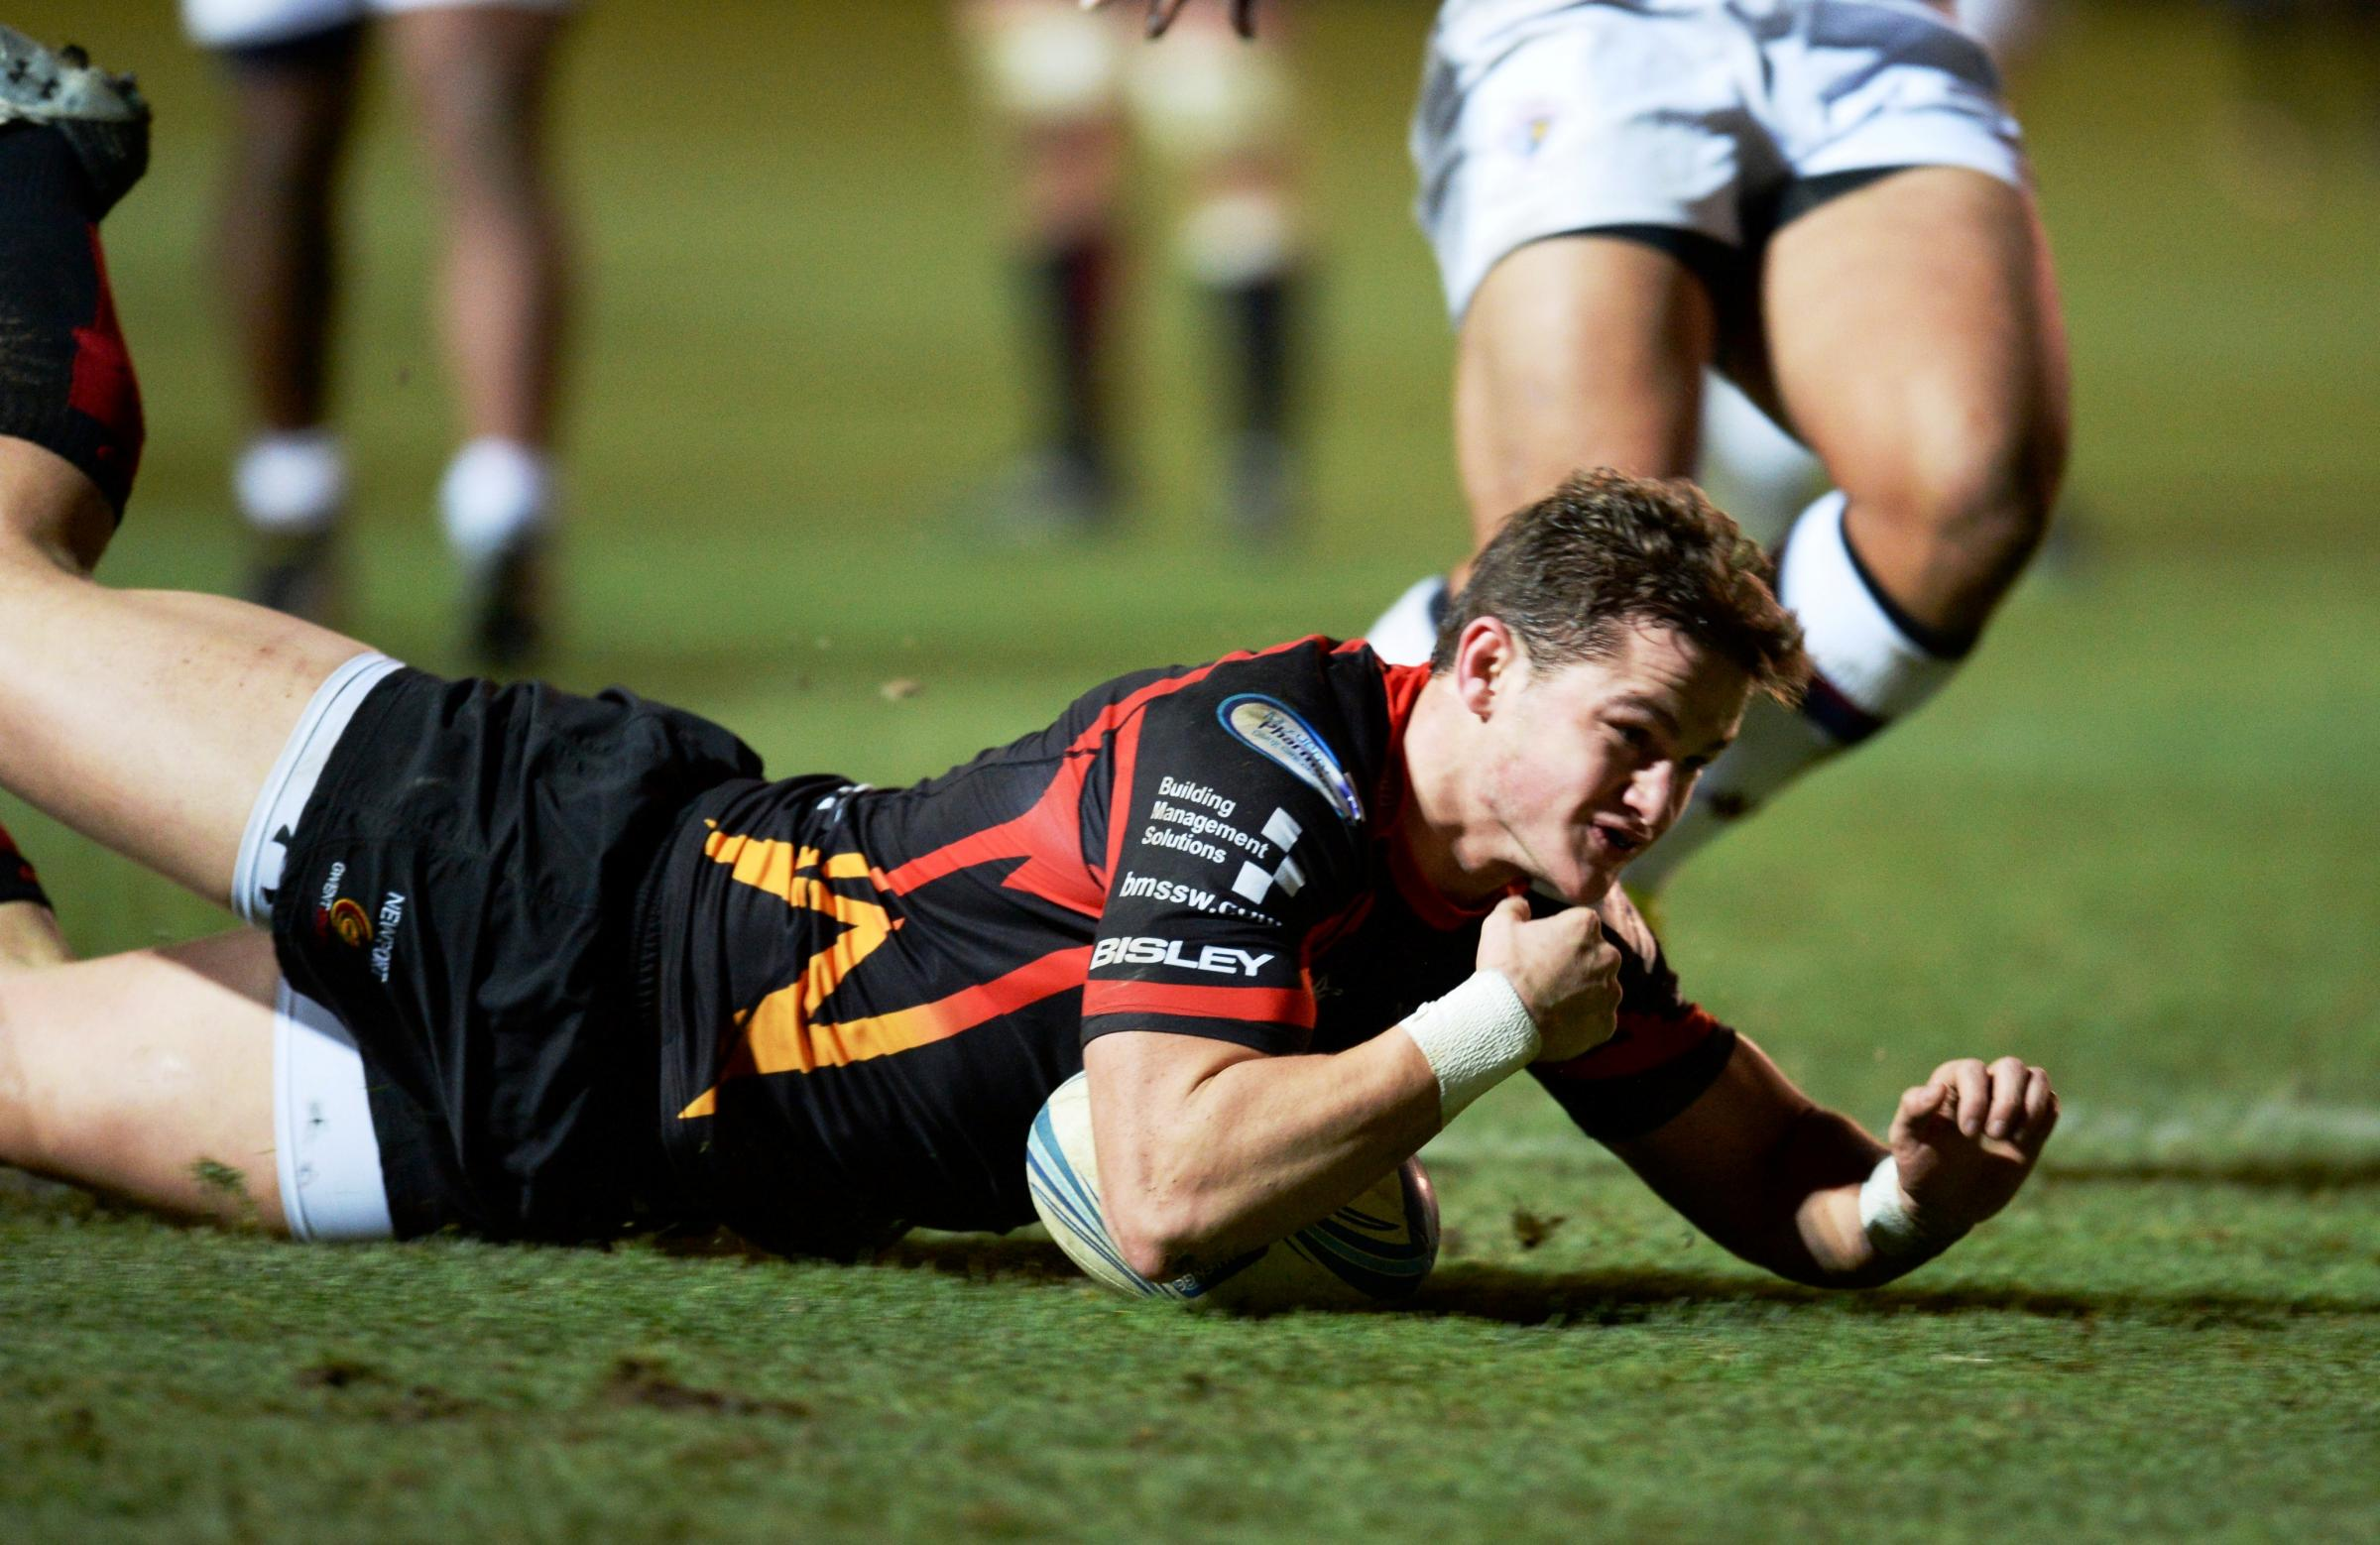 TRY TIME: Dragons back Hallam Amos scores during his side's 40-24 bonus point win over Bordeaux-Bègles at Rodney Parade earlier this month in the Amlin Challenge Cup